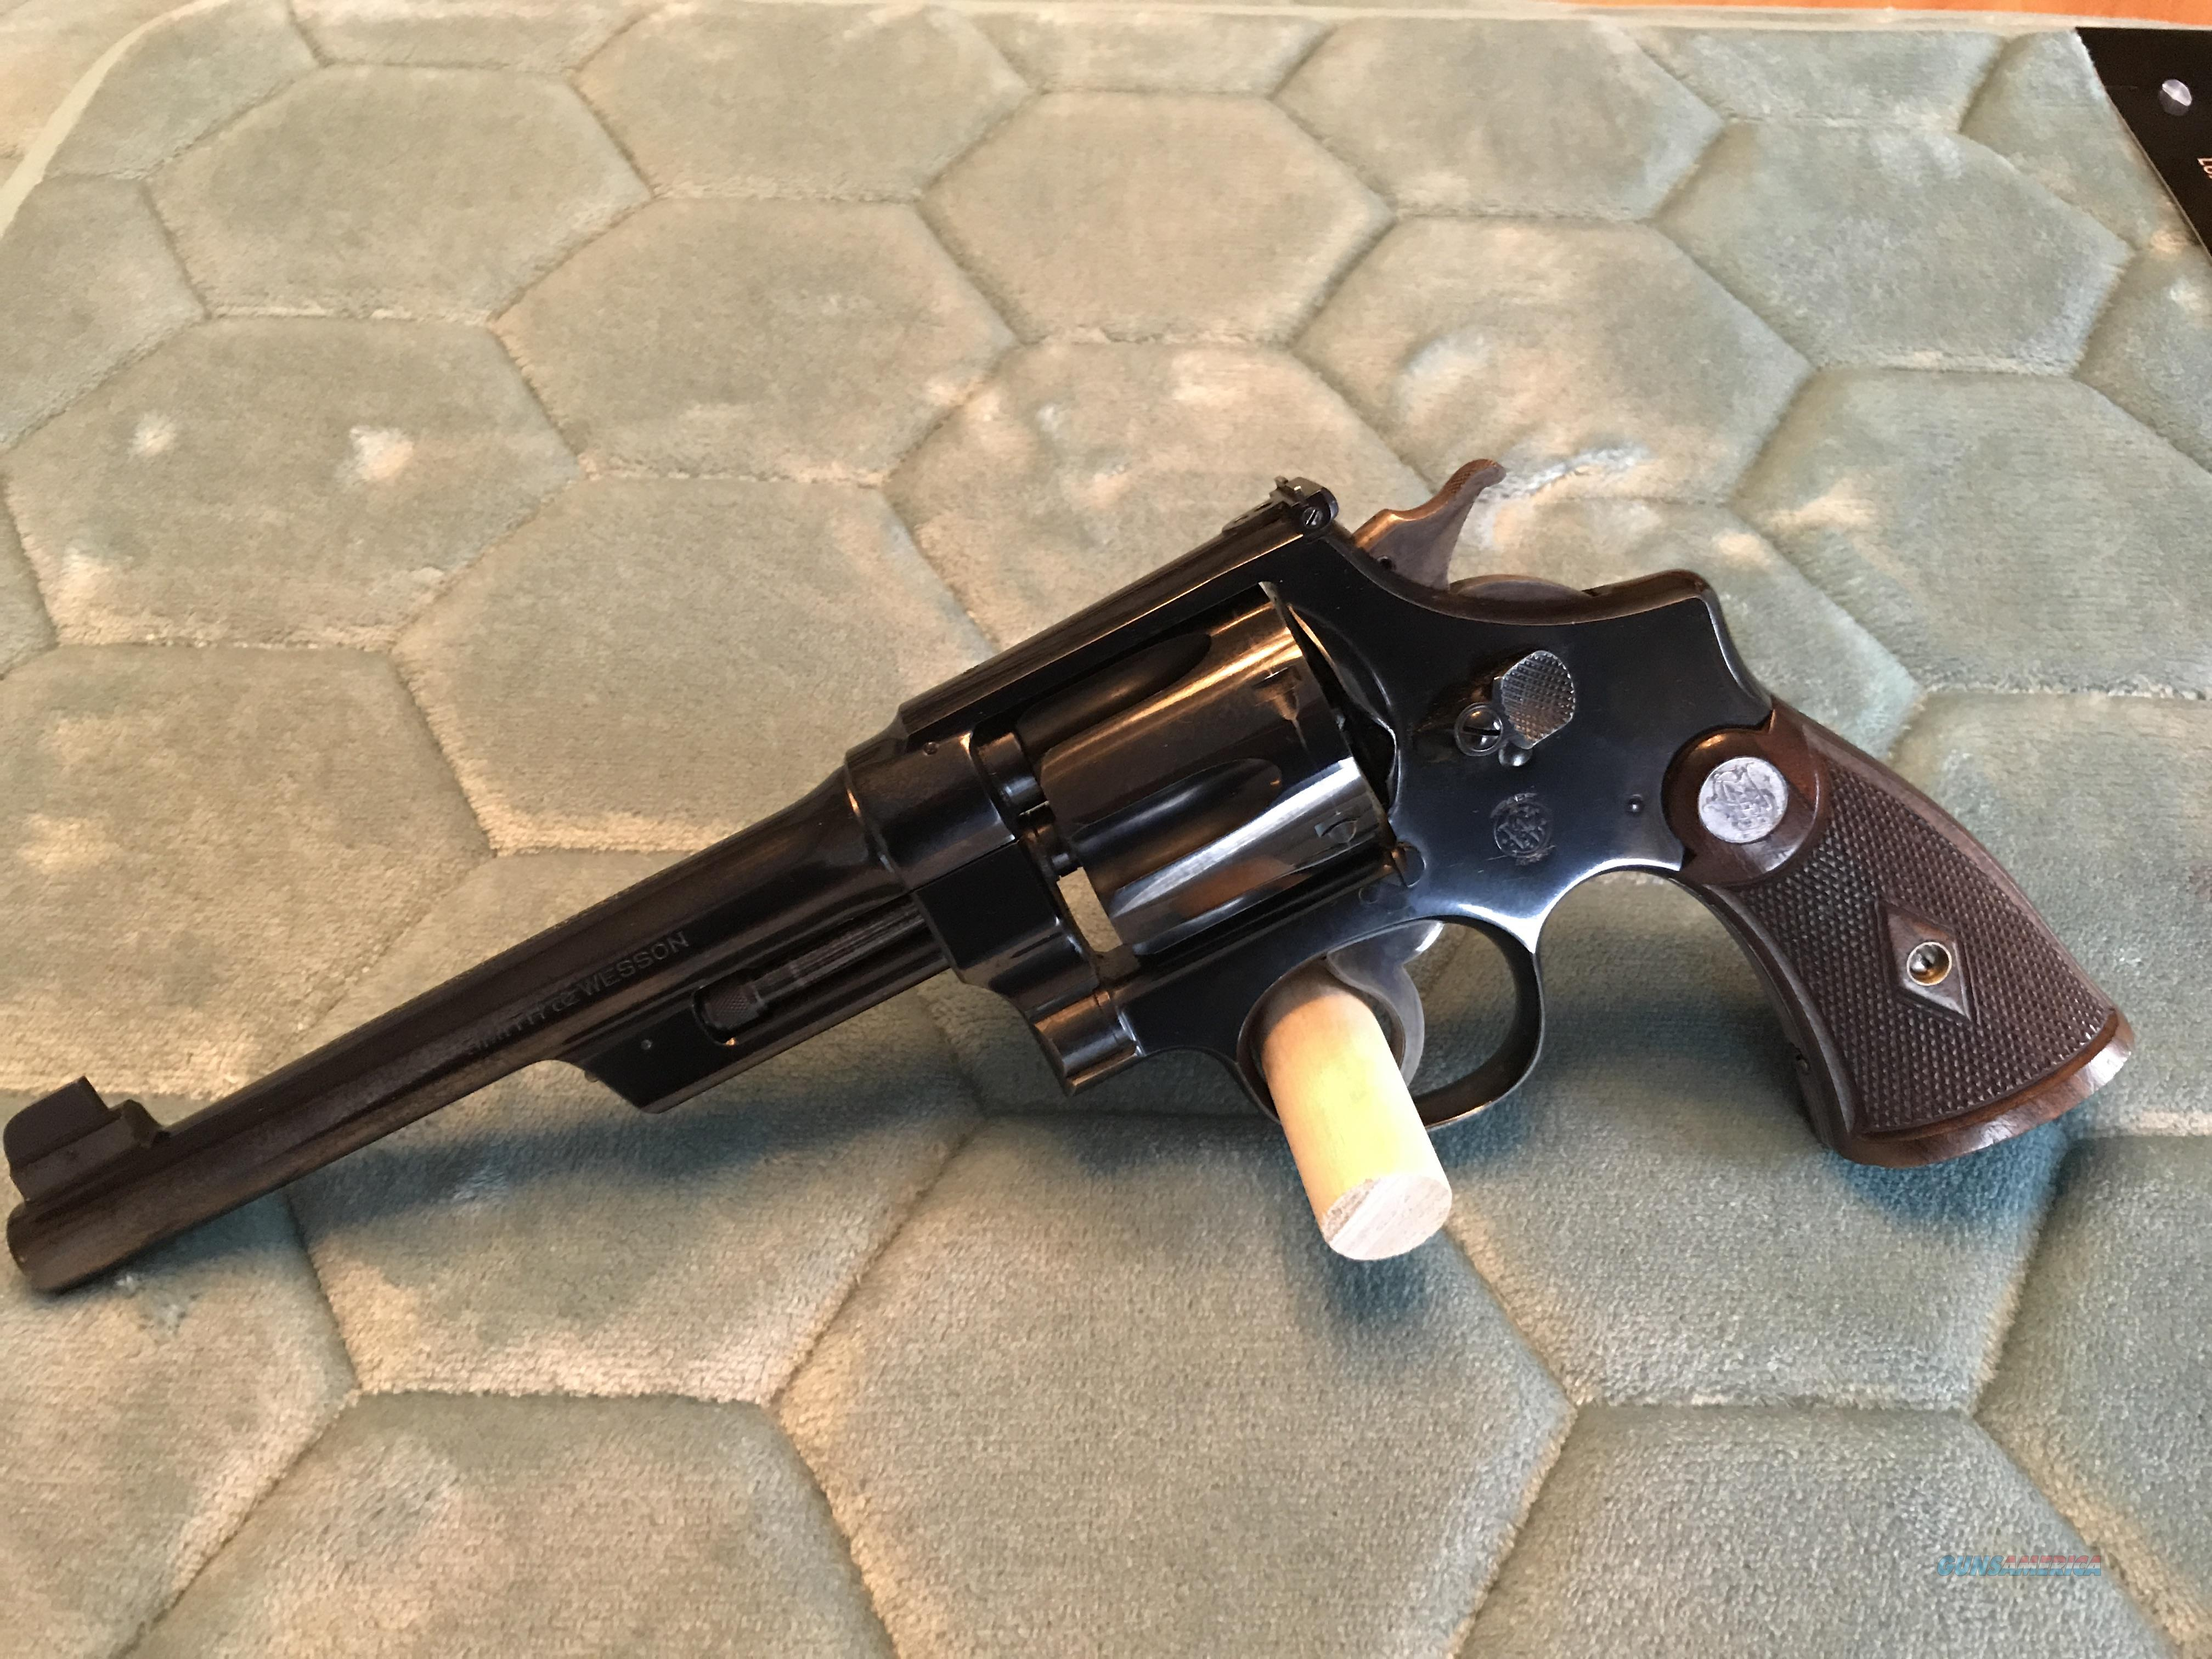 Smith & Wesson 38/44 Outdoorsman - ALL MATCHING  Guns > Pistols > Smith & Wesson Revolvers > Pre-1945